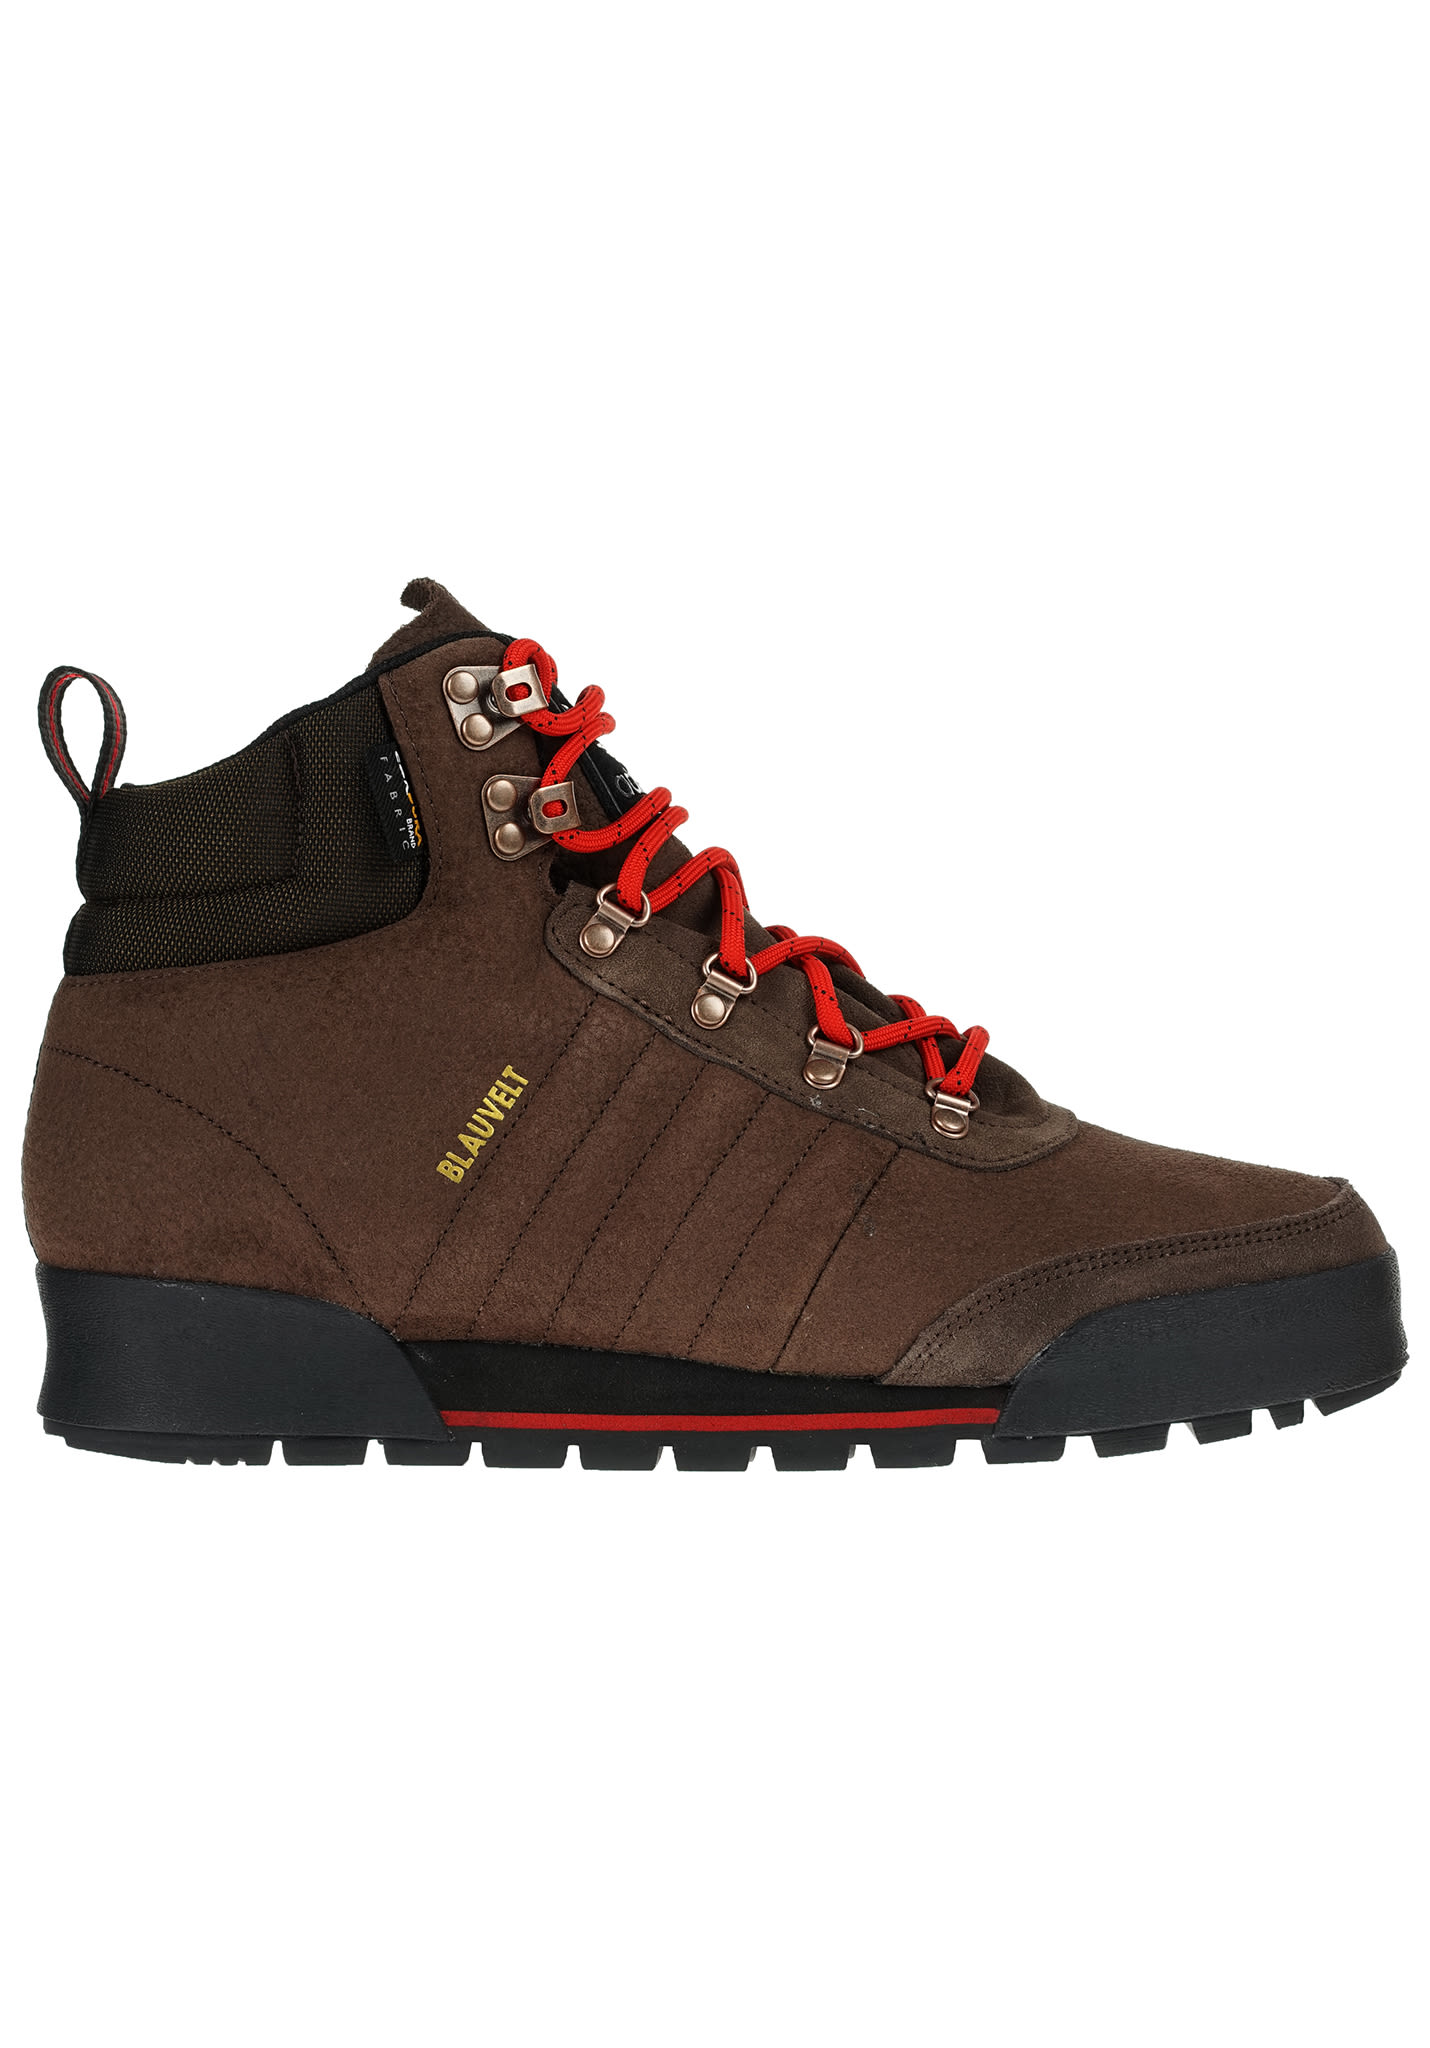 33d6e5c154b840 adidas Originals Jake 2.0 - Stiefel für Herren - Braun - Planet Sports